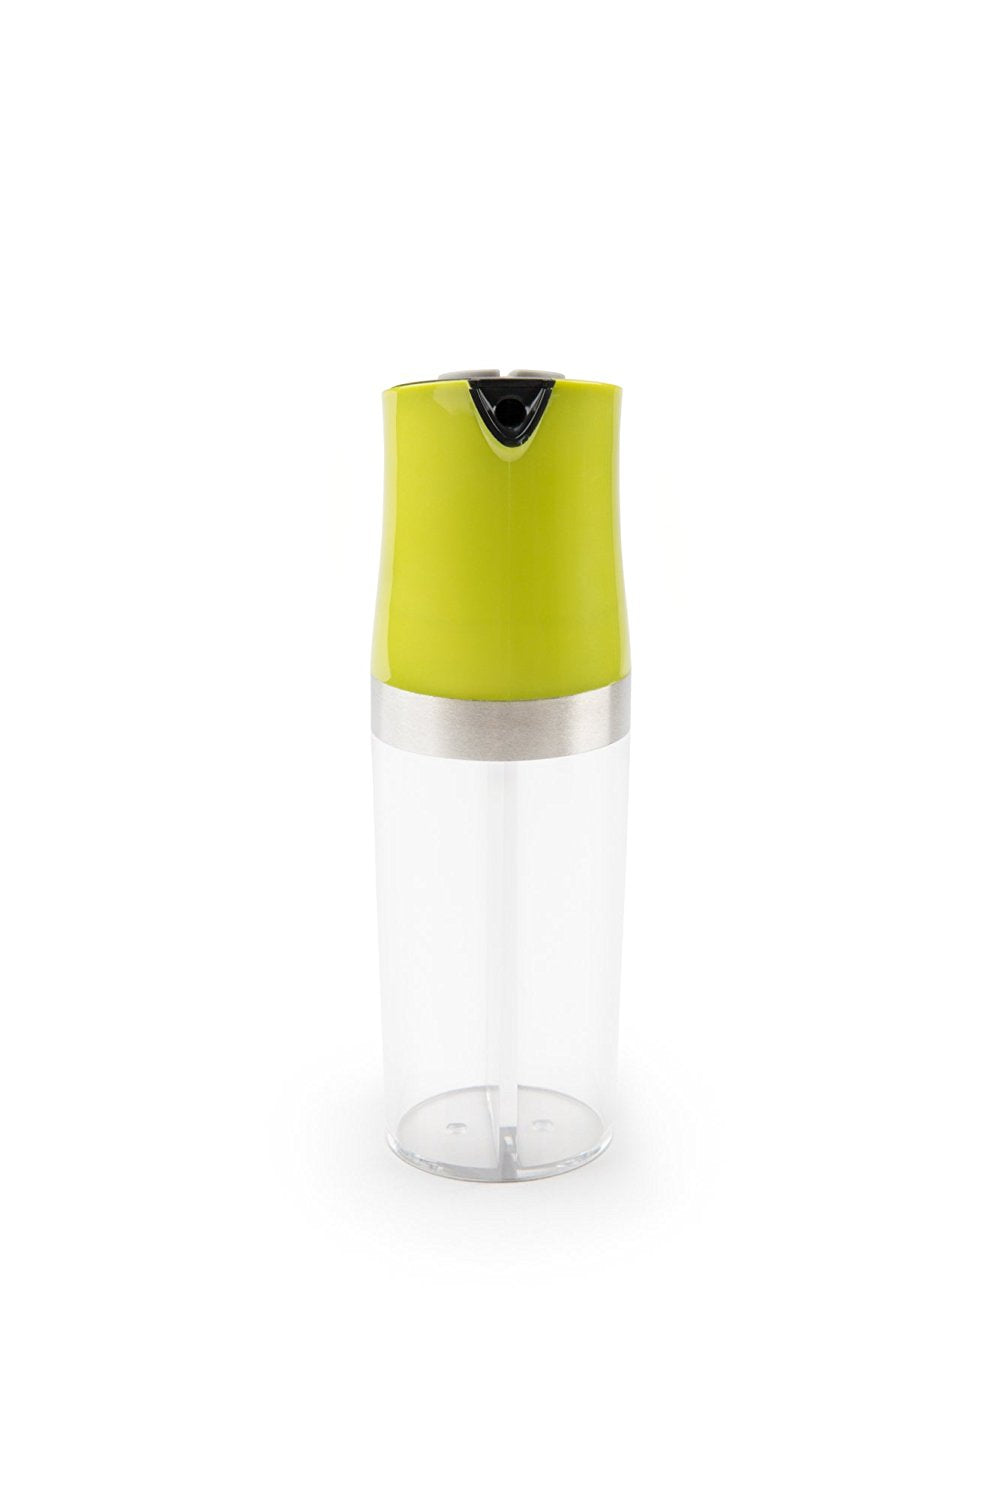 Fox Run Vinegar & Oil Dual Dispenser, Green